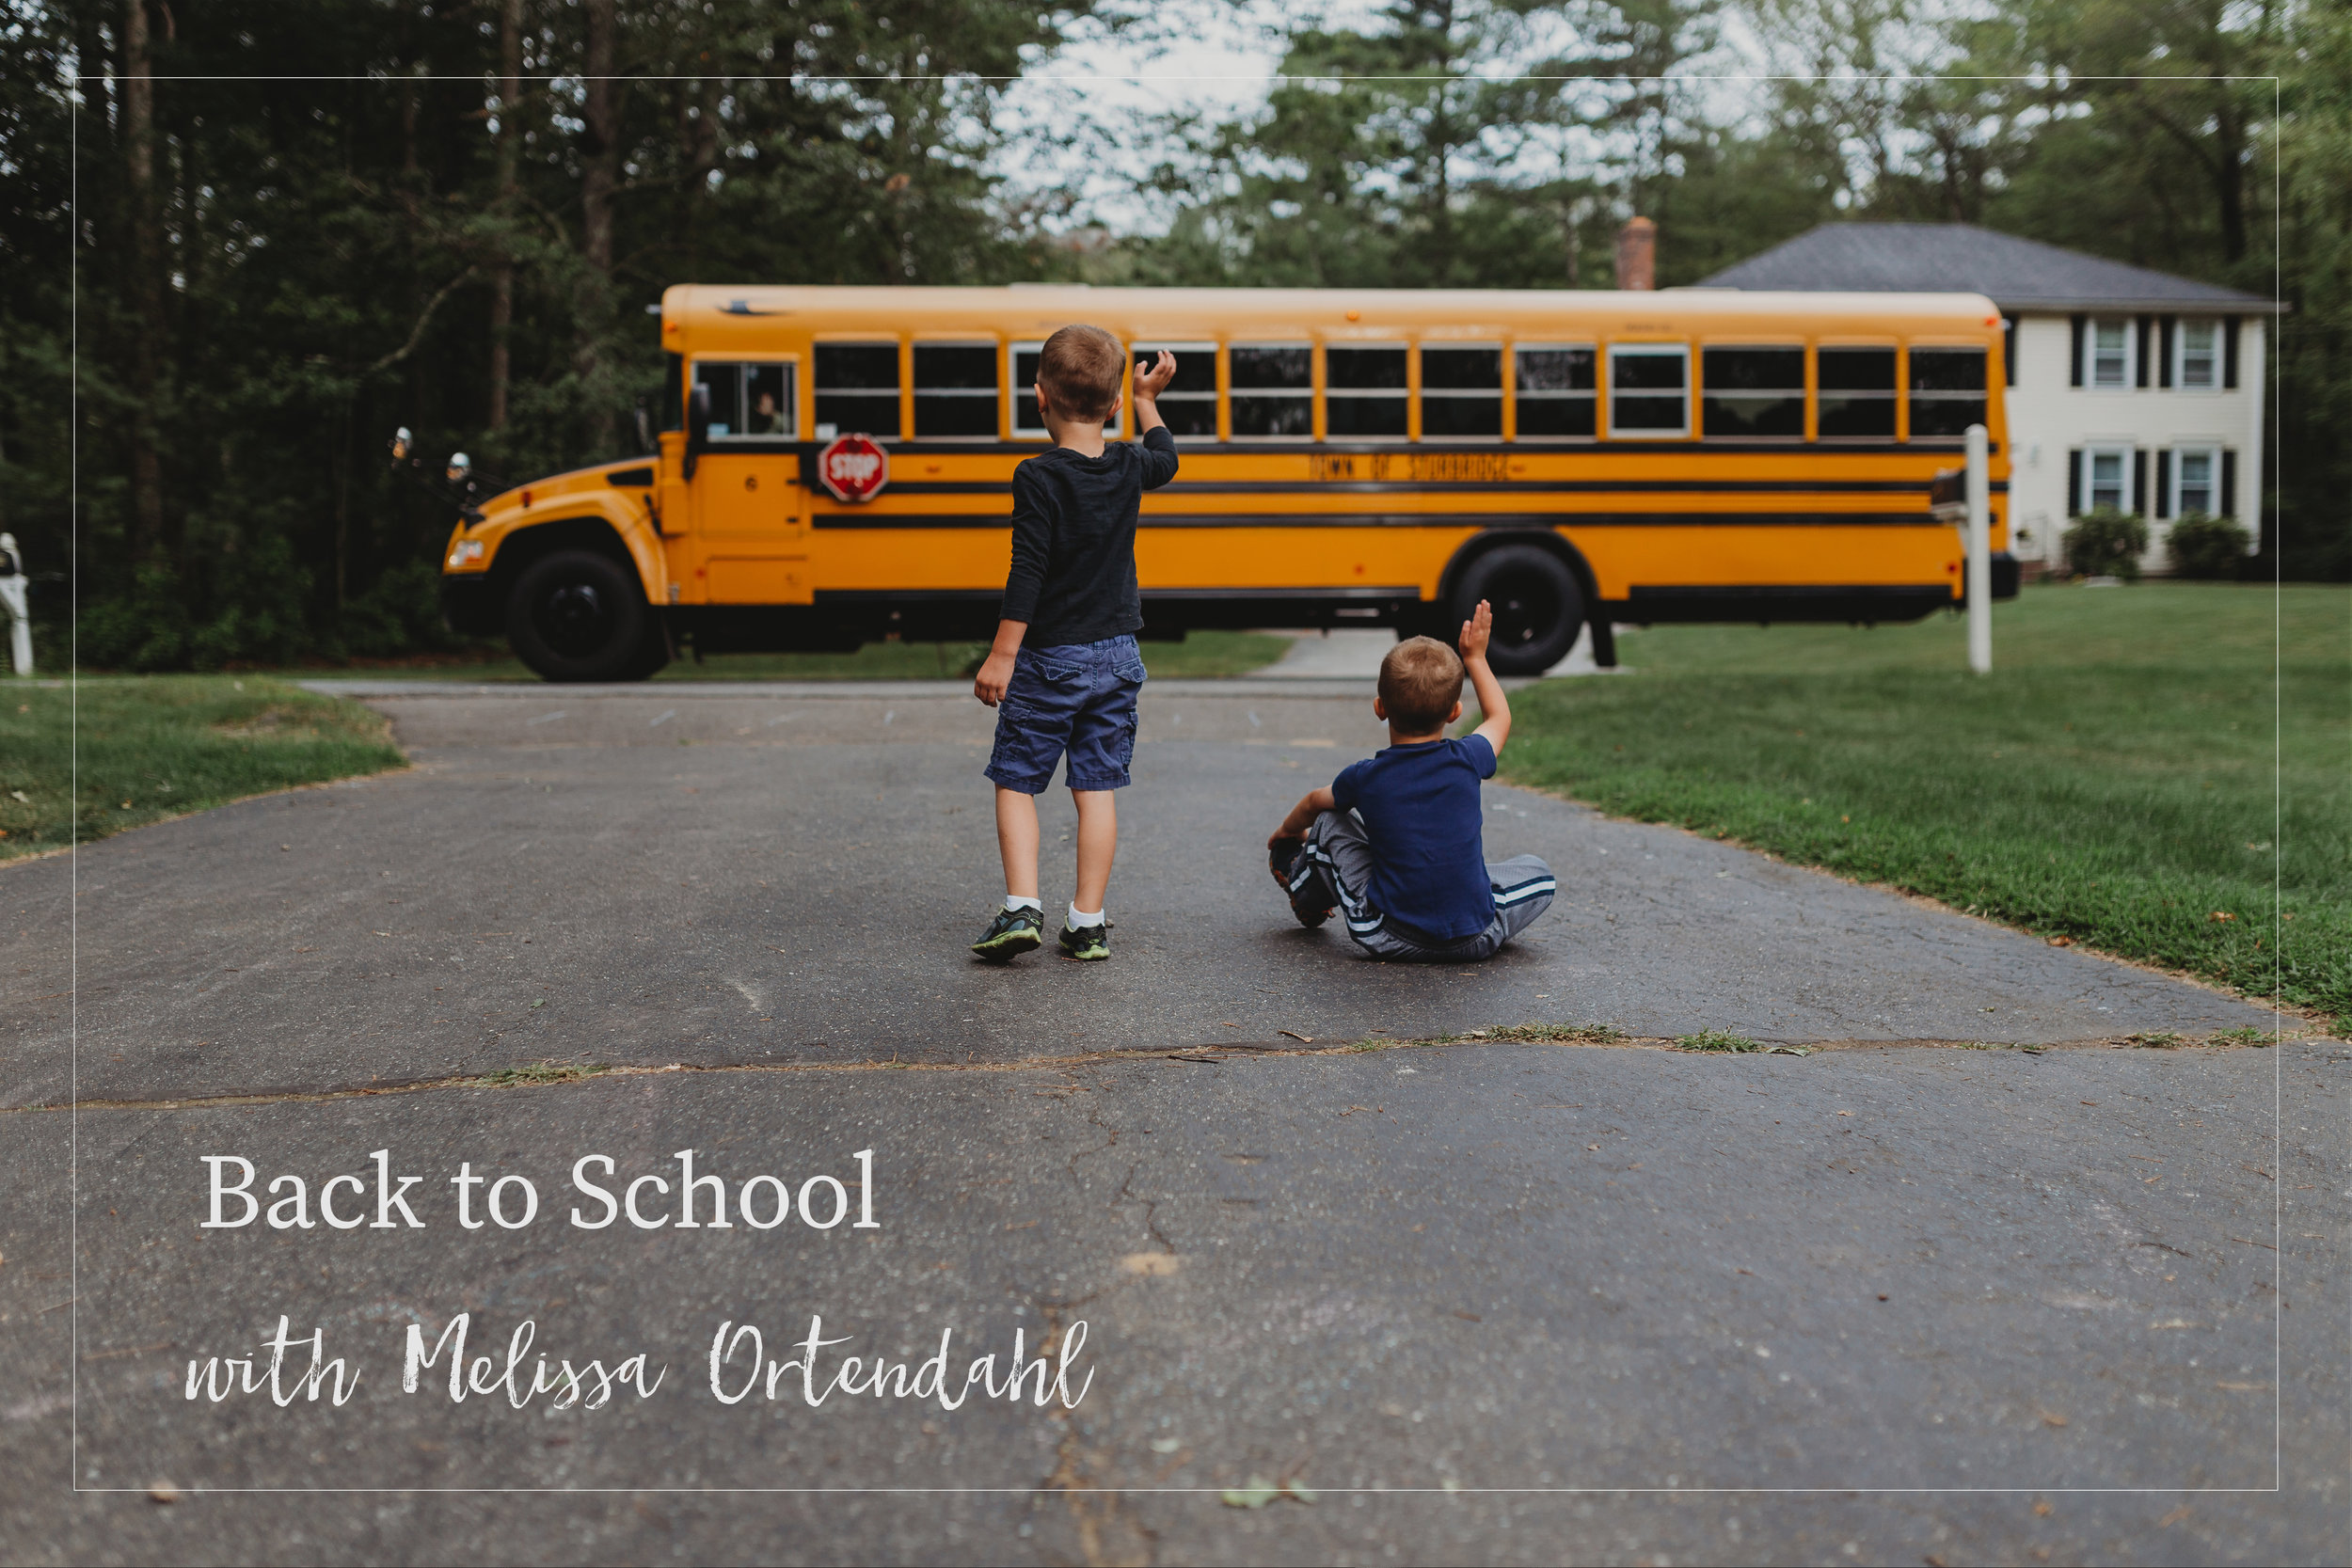 Back to School: Mini Course - with Melissa Ortendahl